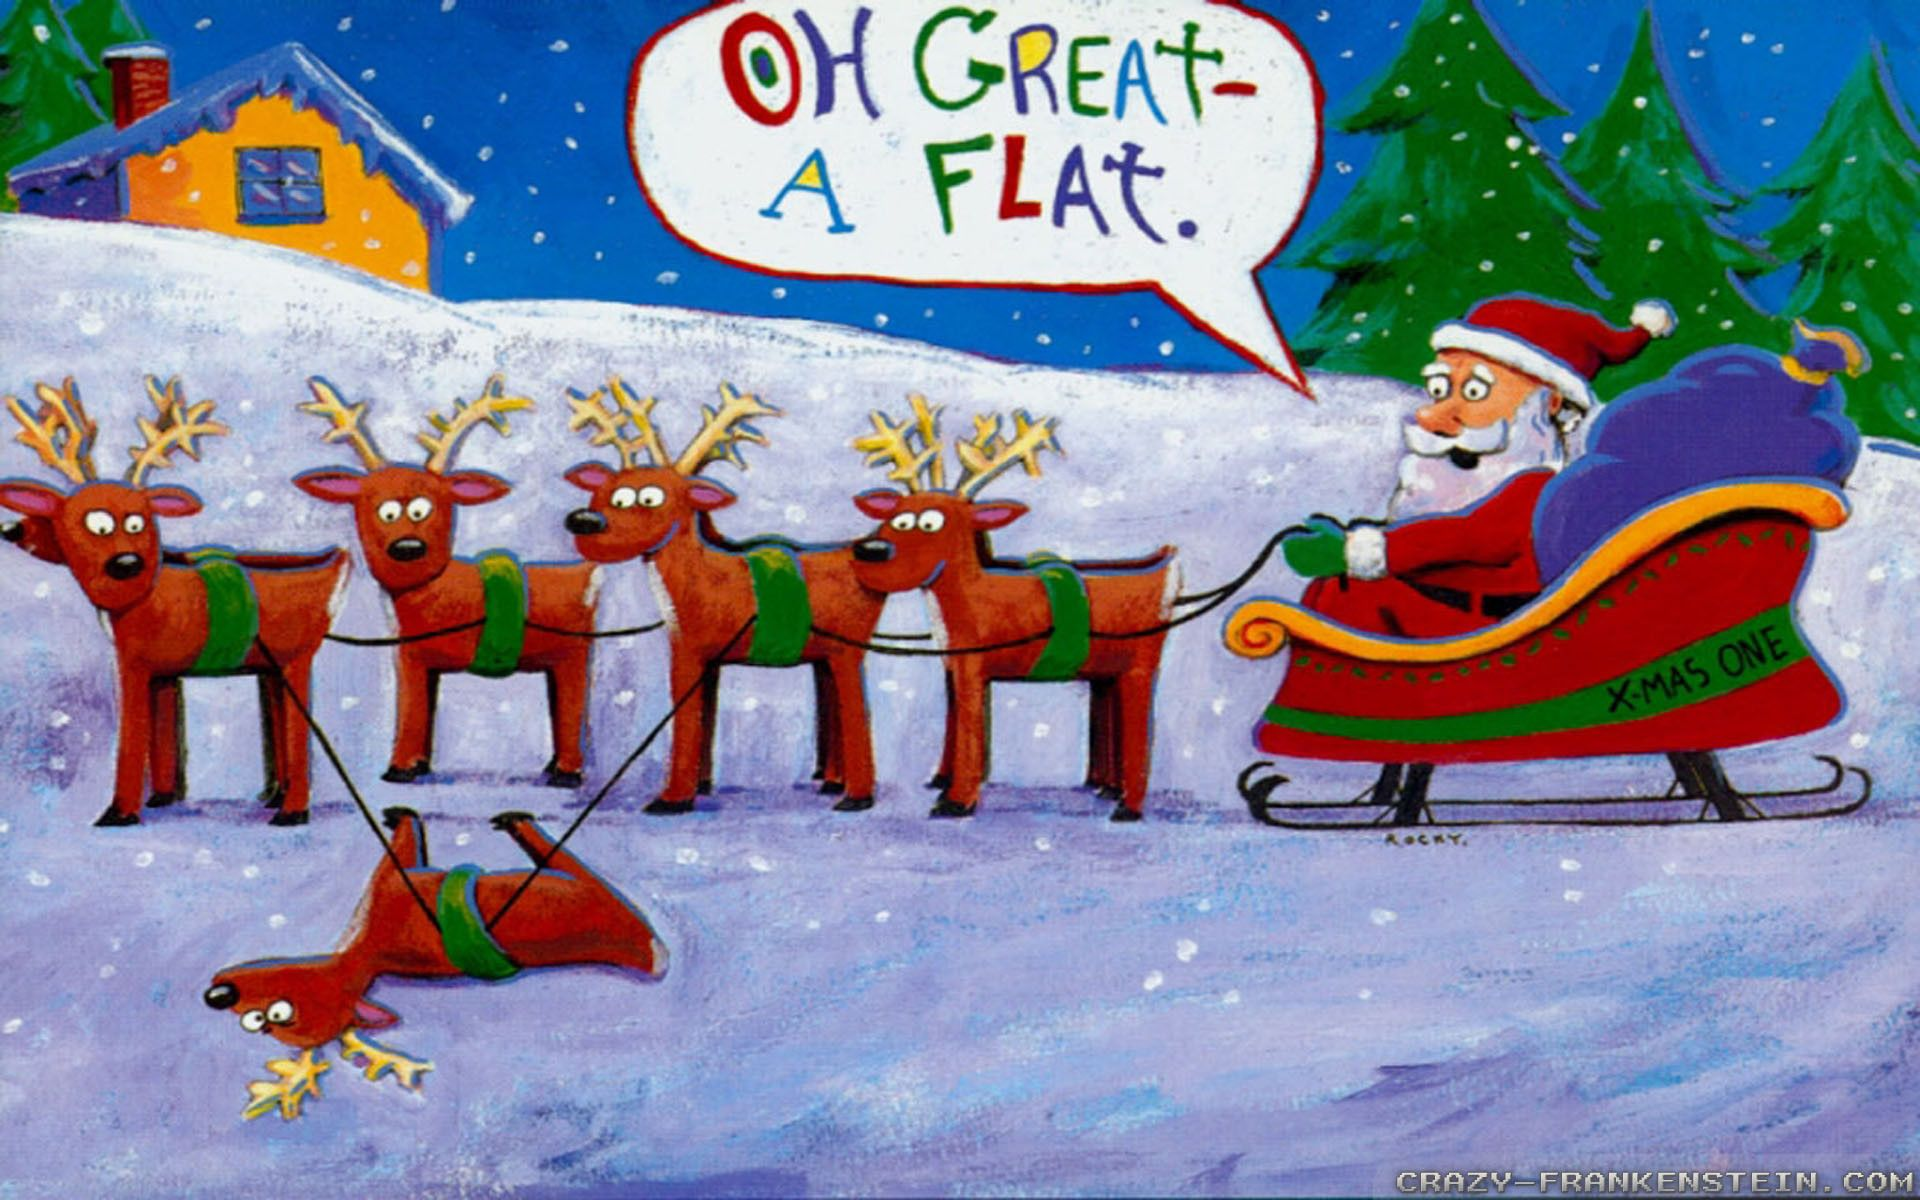 Funny Christmas Wallpapers   Top Funny Christmas Backgrounds 1920x1200